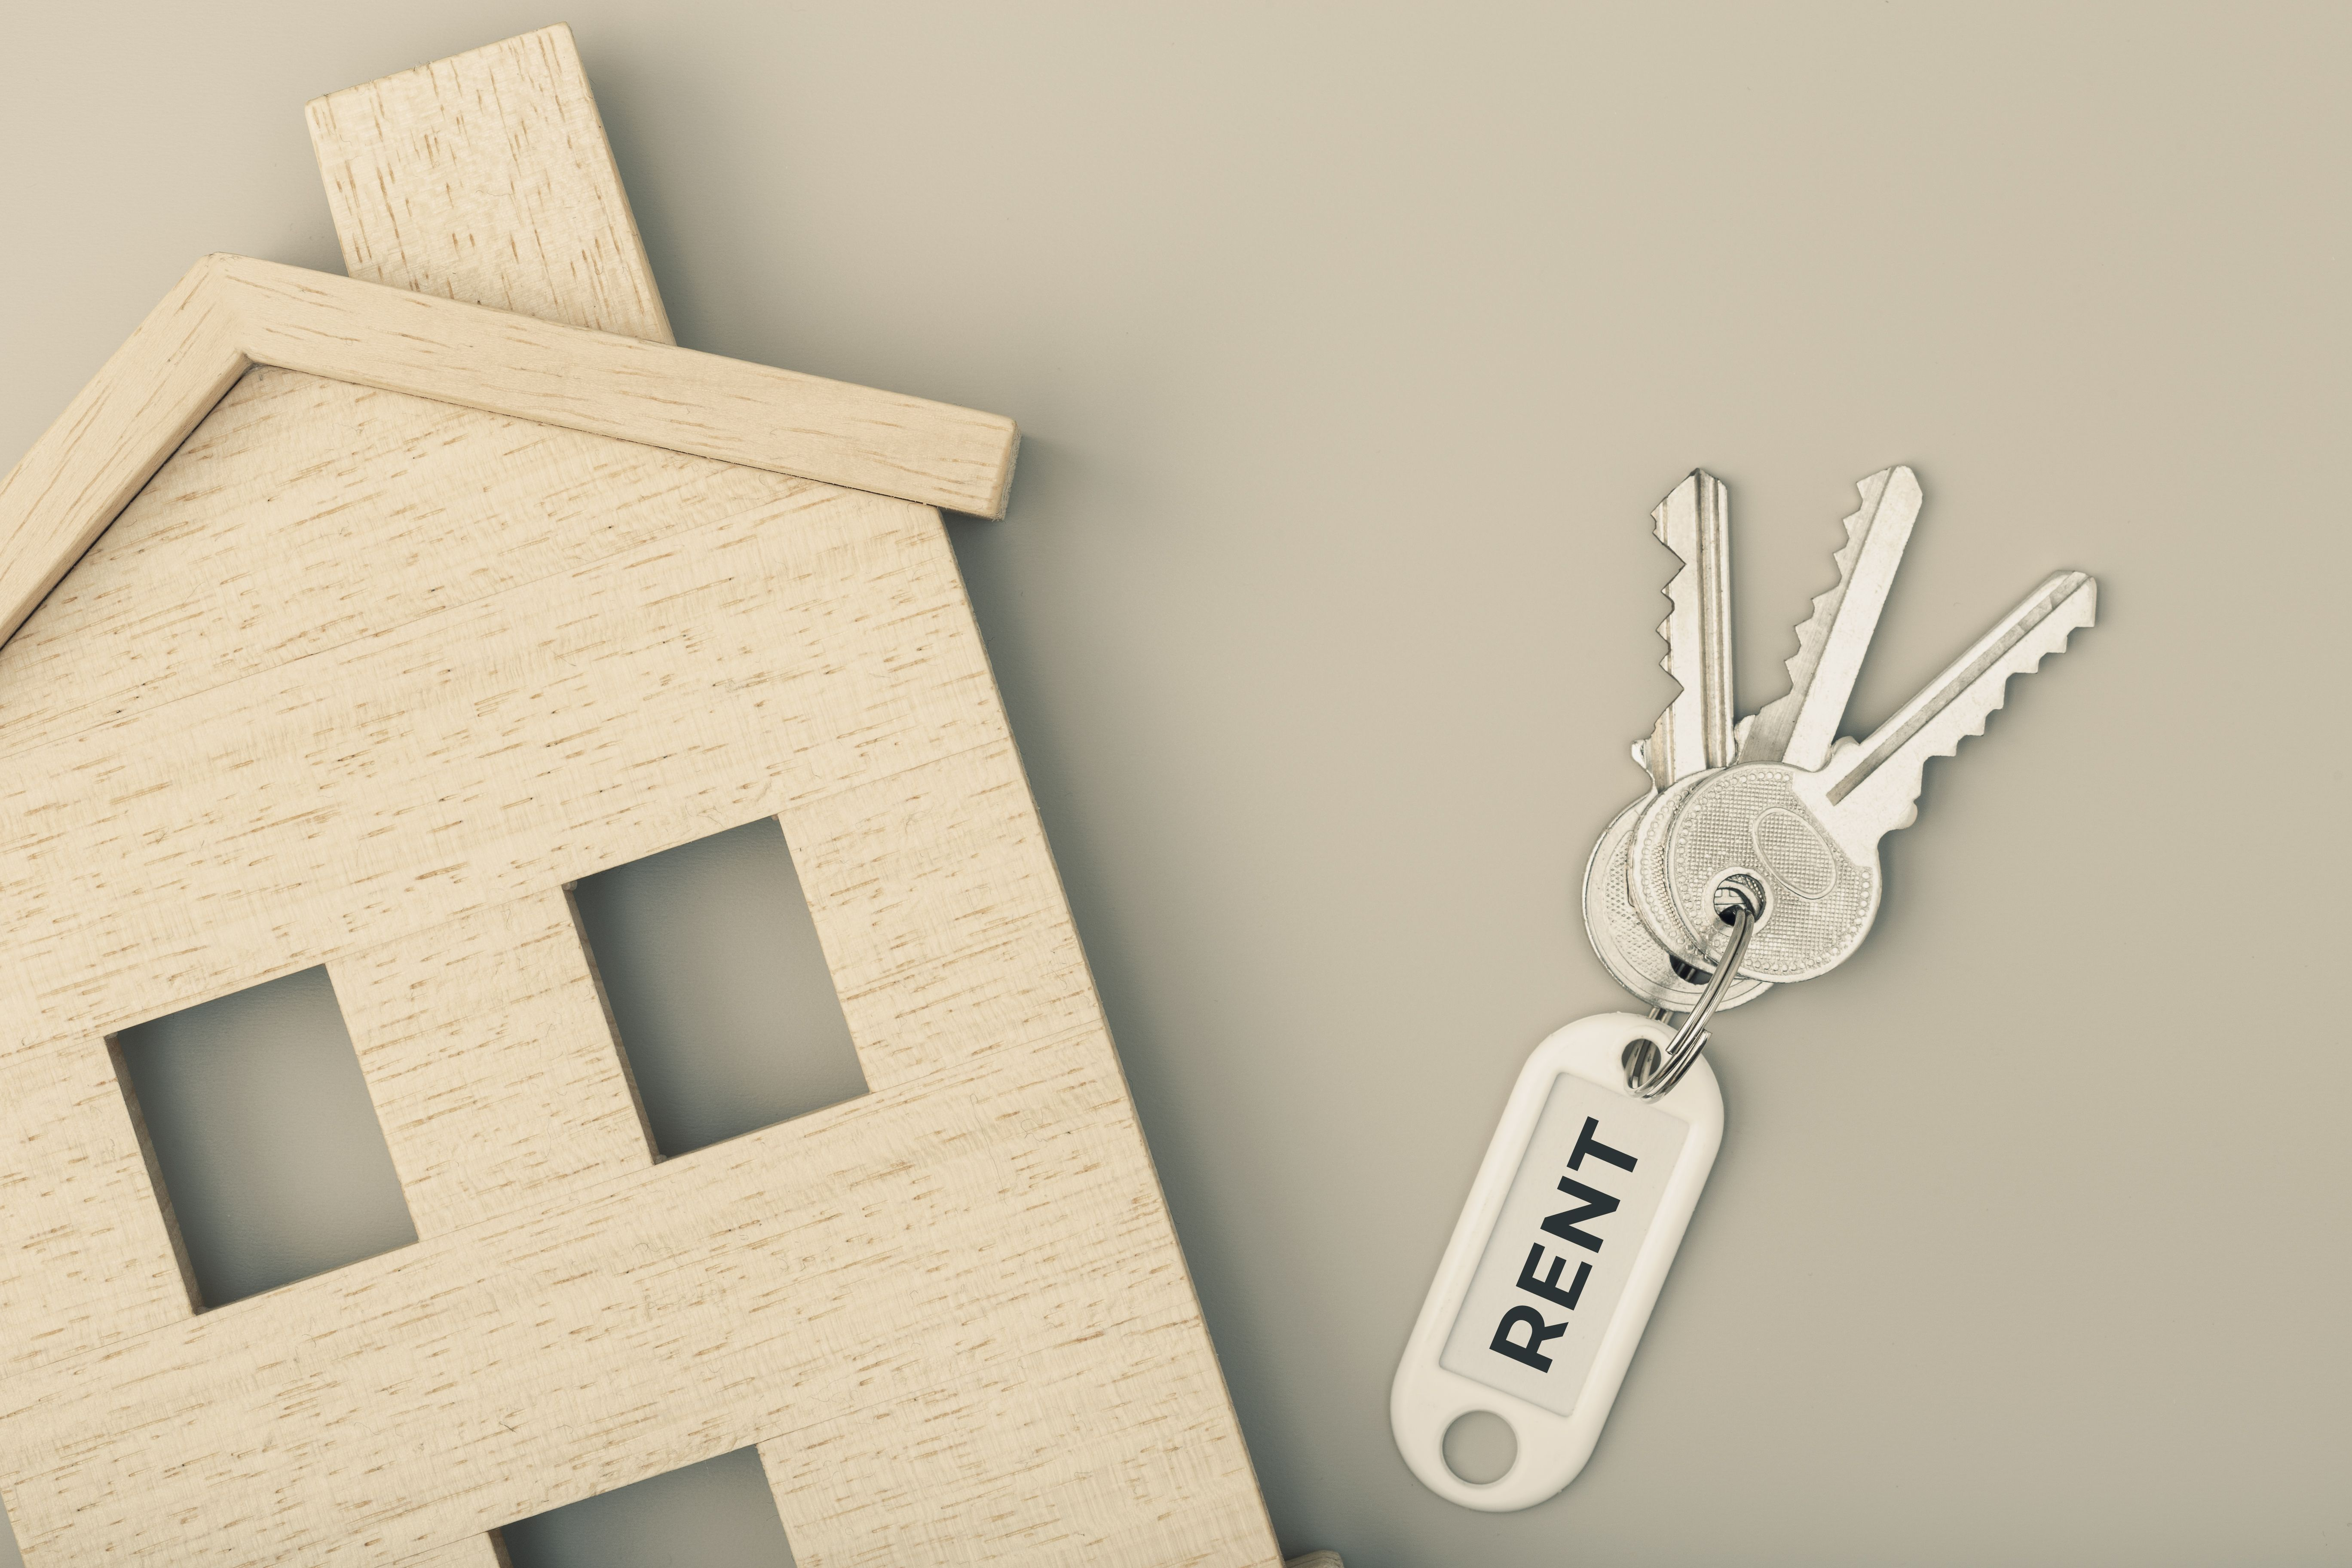 Image concept for renting a house with keys and a model house against a grey background